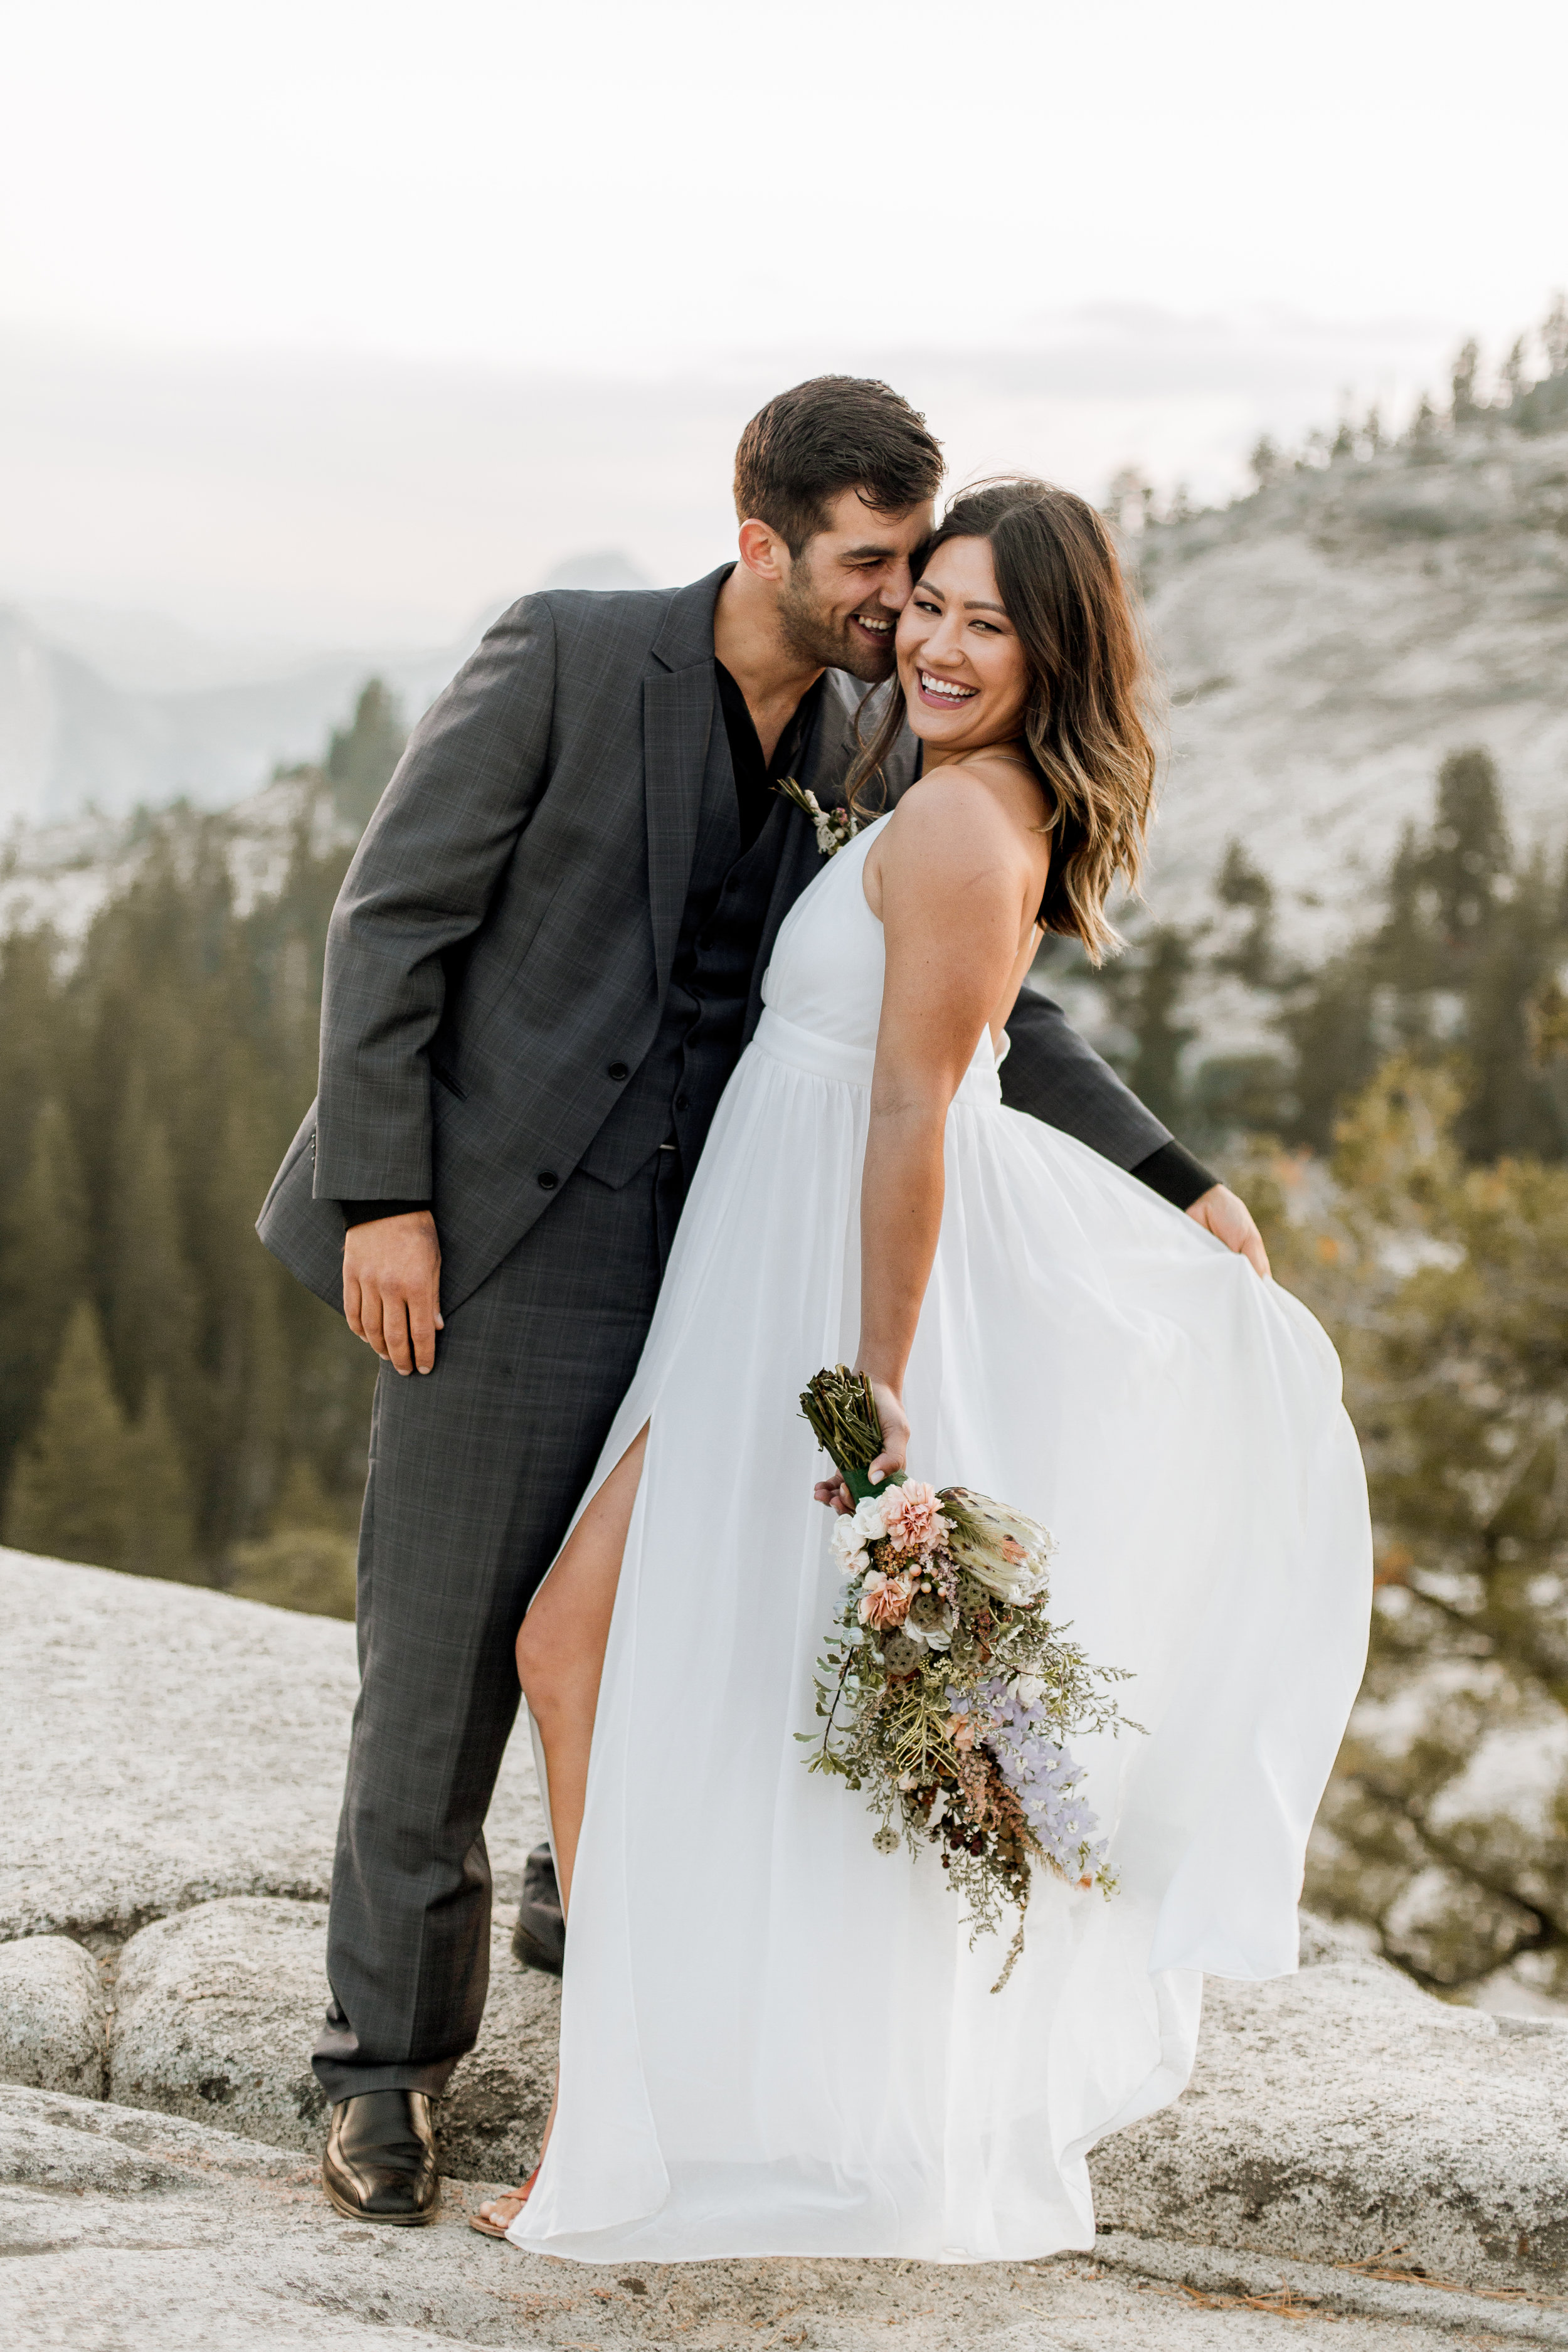 nicole-daacke-photography-yosemite-national-park-fall-elopement-adventurous-free-spirit-boho-bohemian-elopement-olmsted-point-yosemite-california-elope-adventure-elopement-photographer-29.jpg